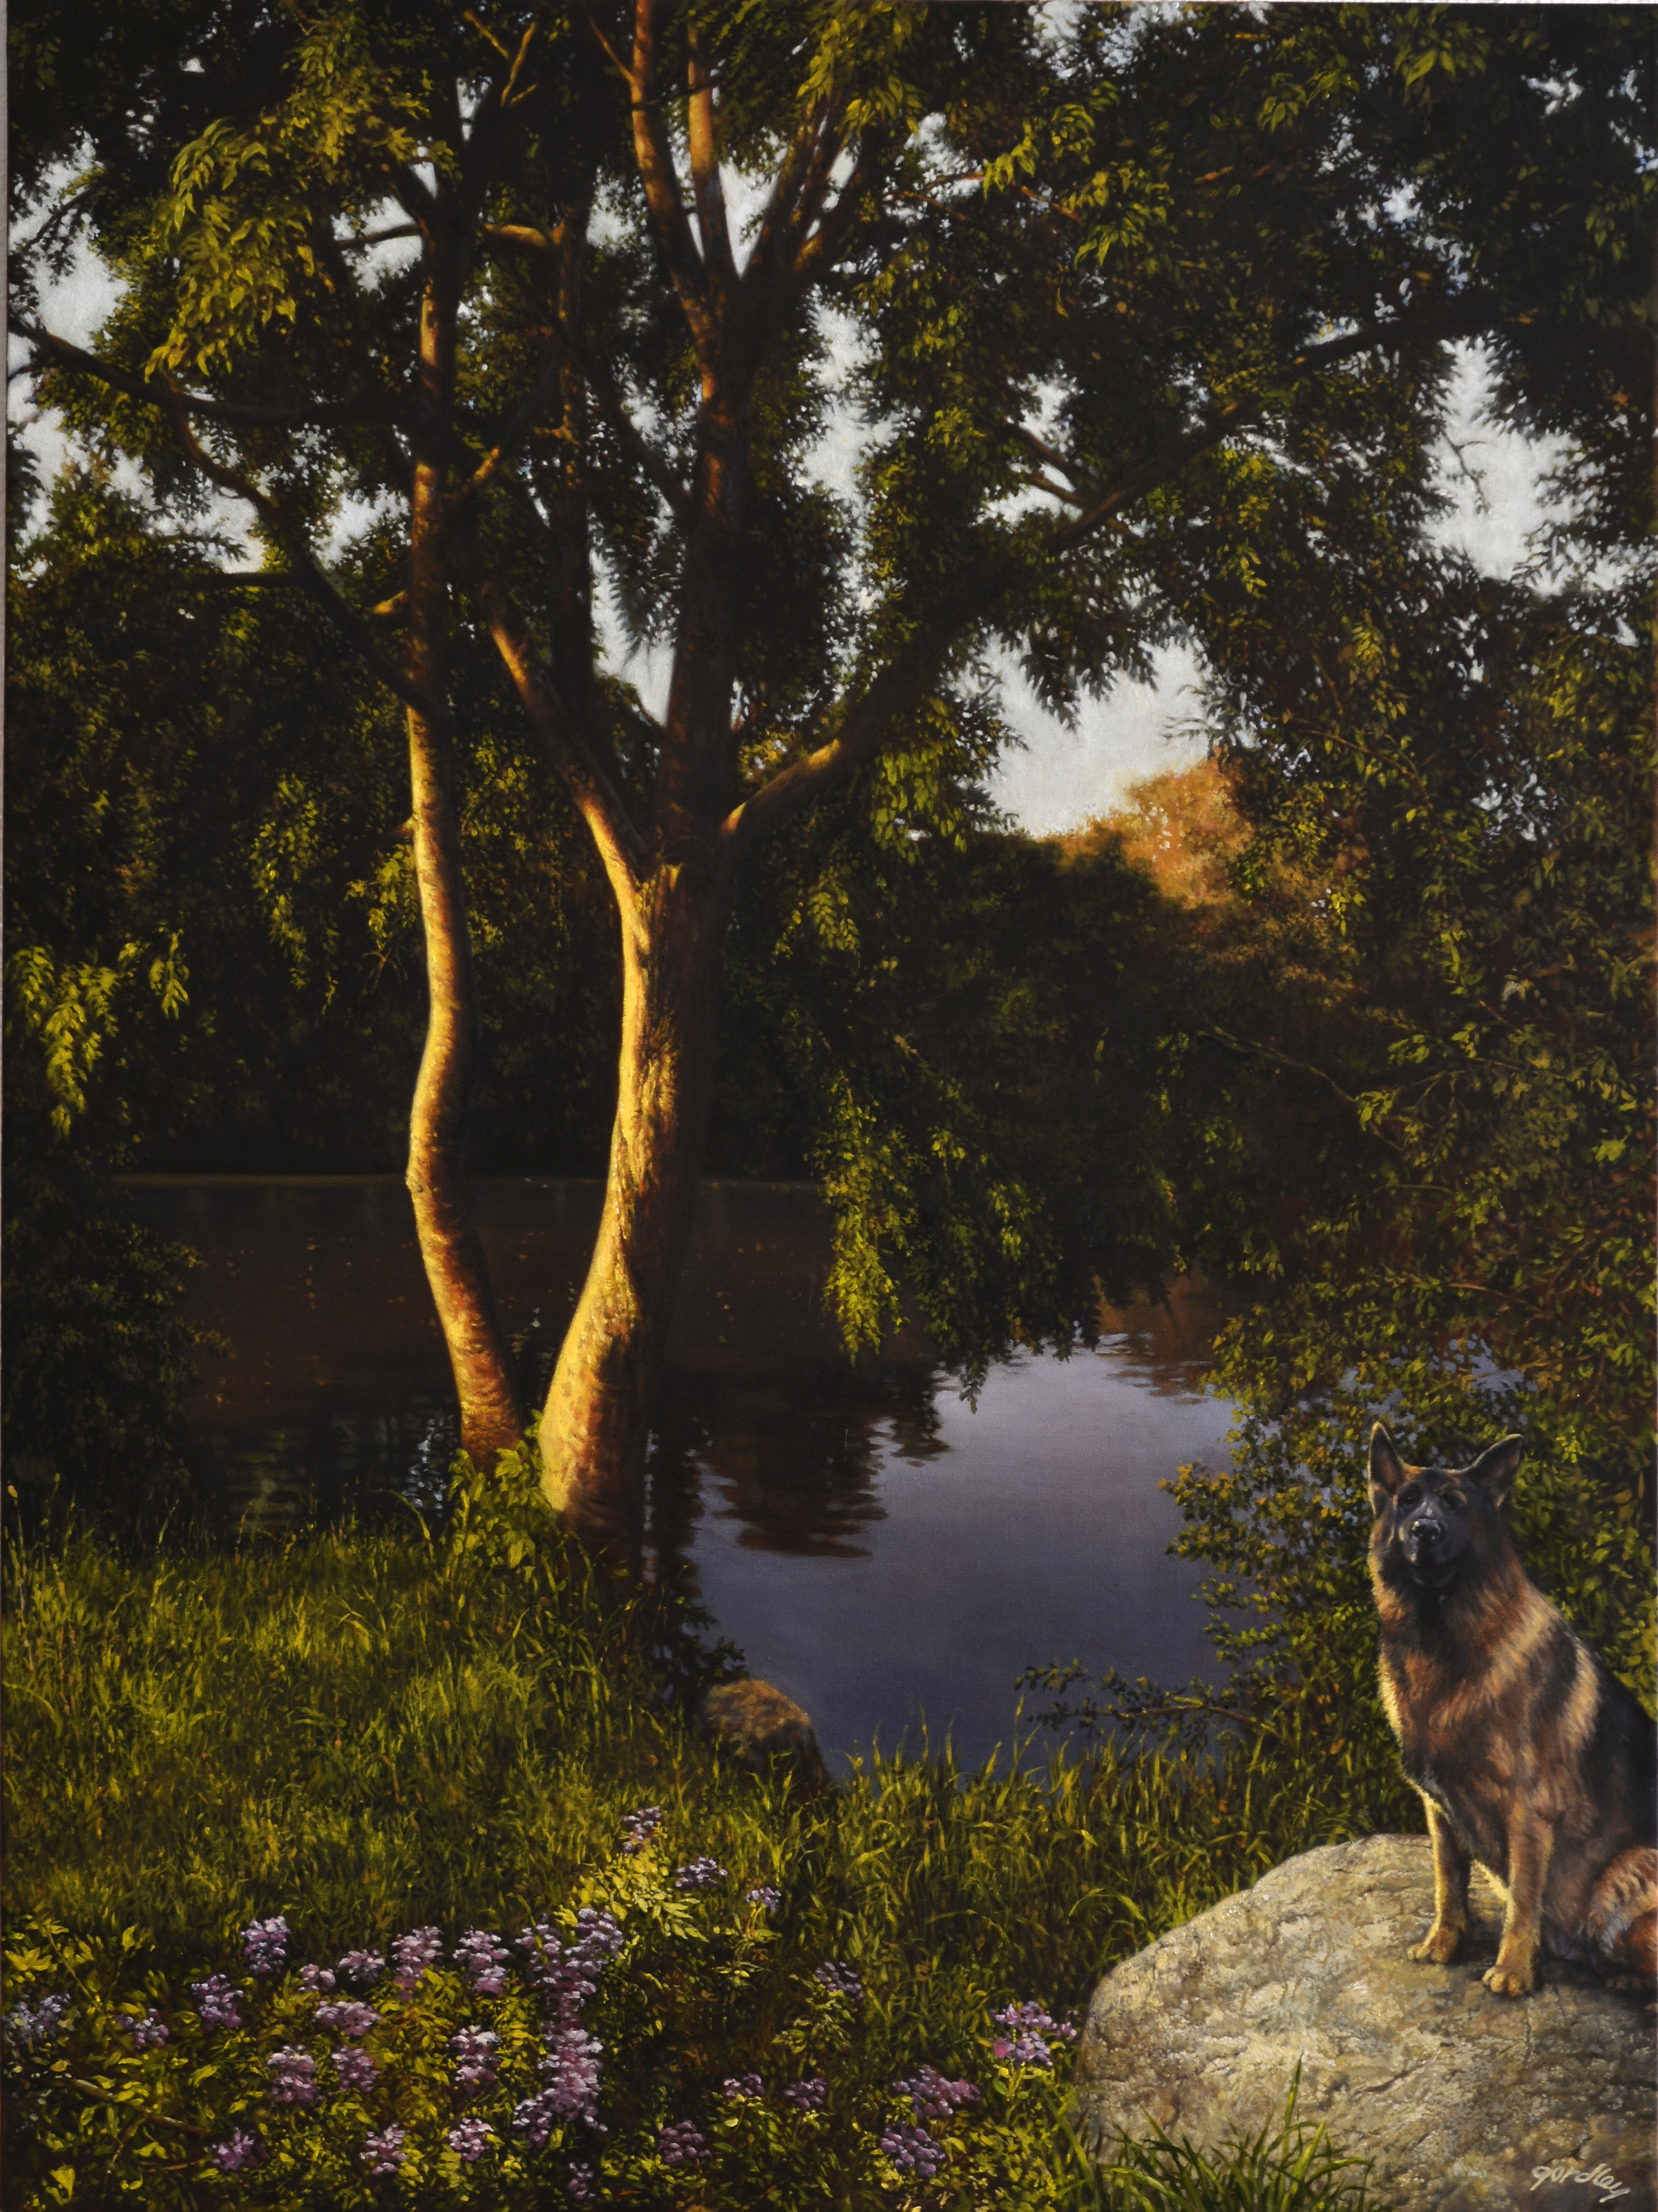 Sunset Lake, oil on canvas, 48 x 36 in.